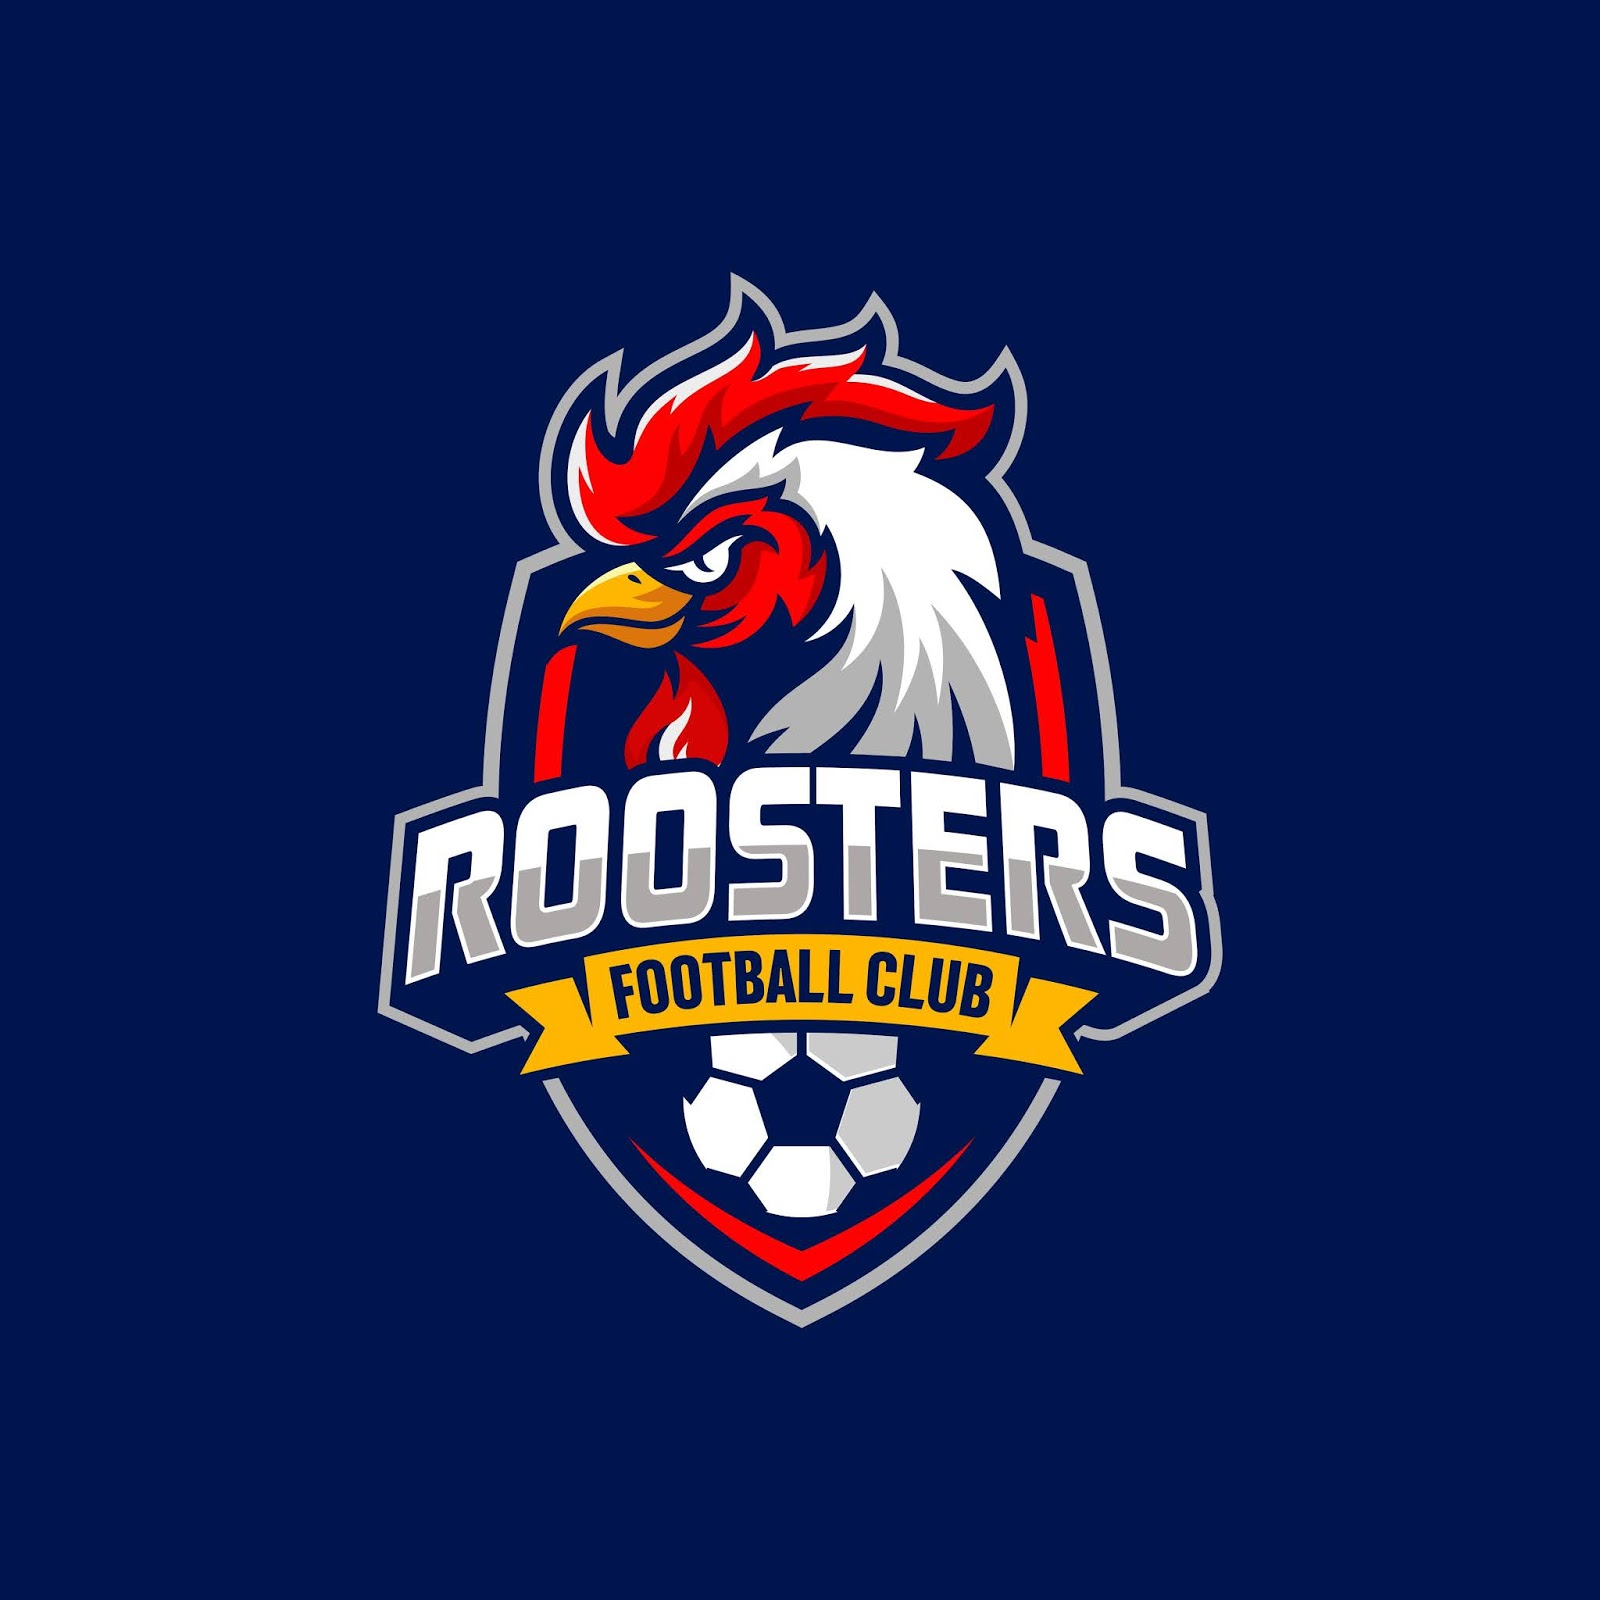 Roosters Football Club Logo Free Download Vector CDR, AI, EPS and PNG Formats